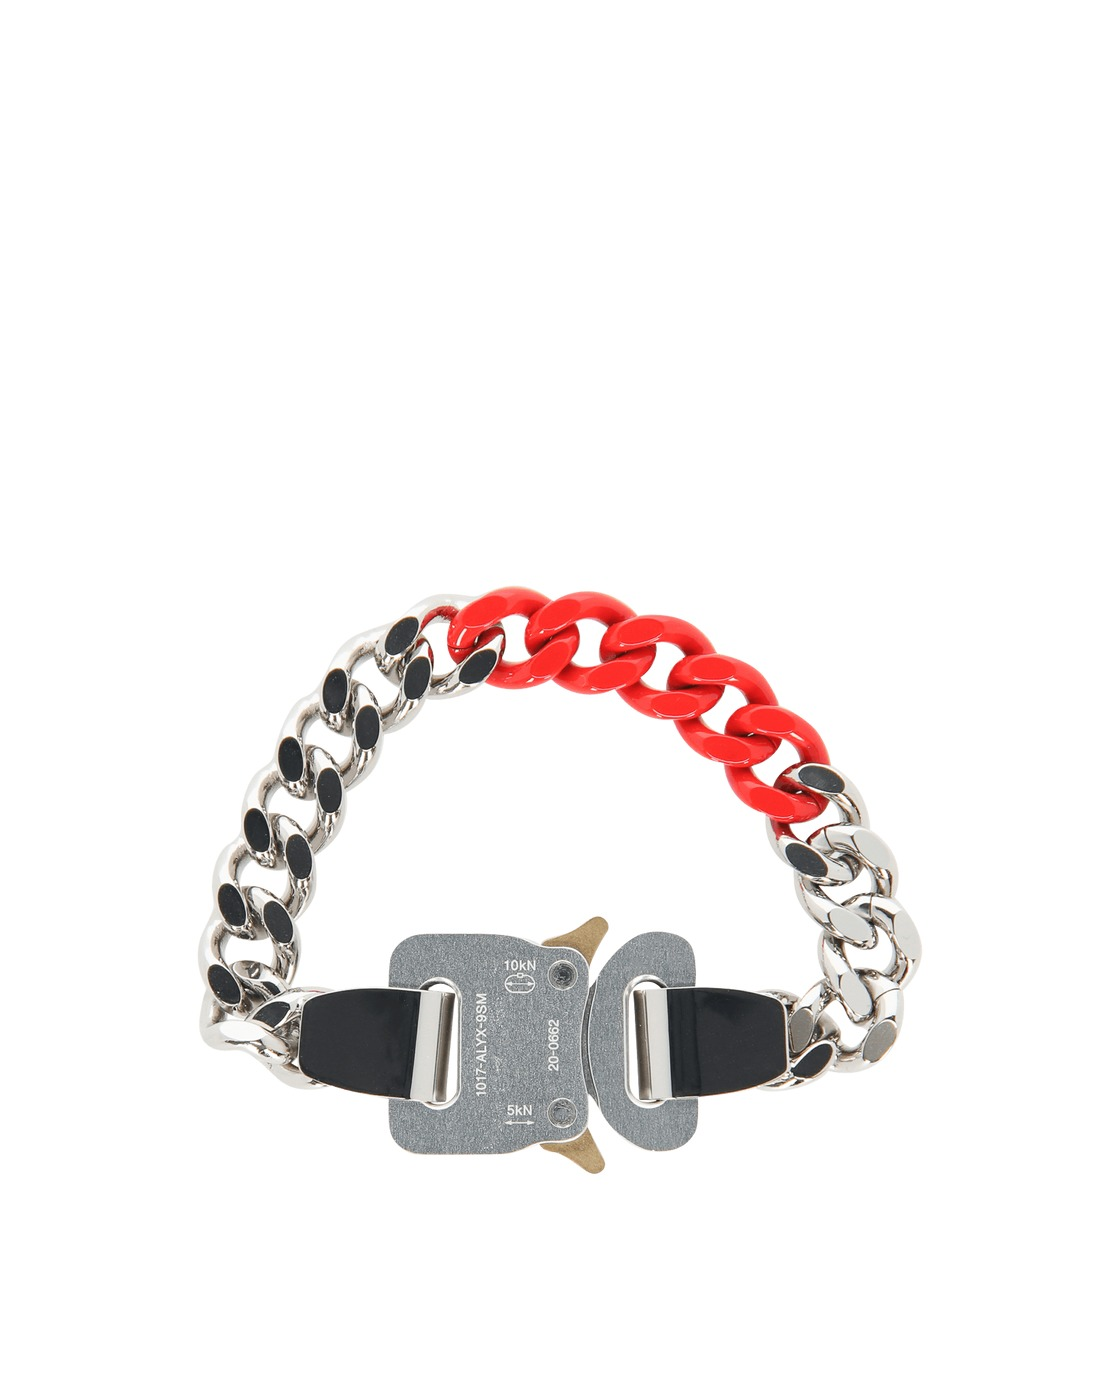 Photo: 1017 Alyx 9sm Colored Links Buckle Bracelet Silver/Red